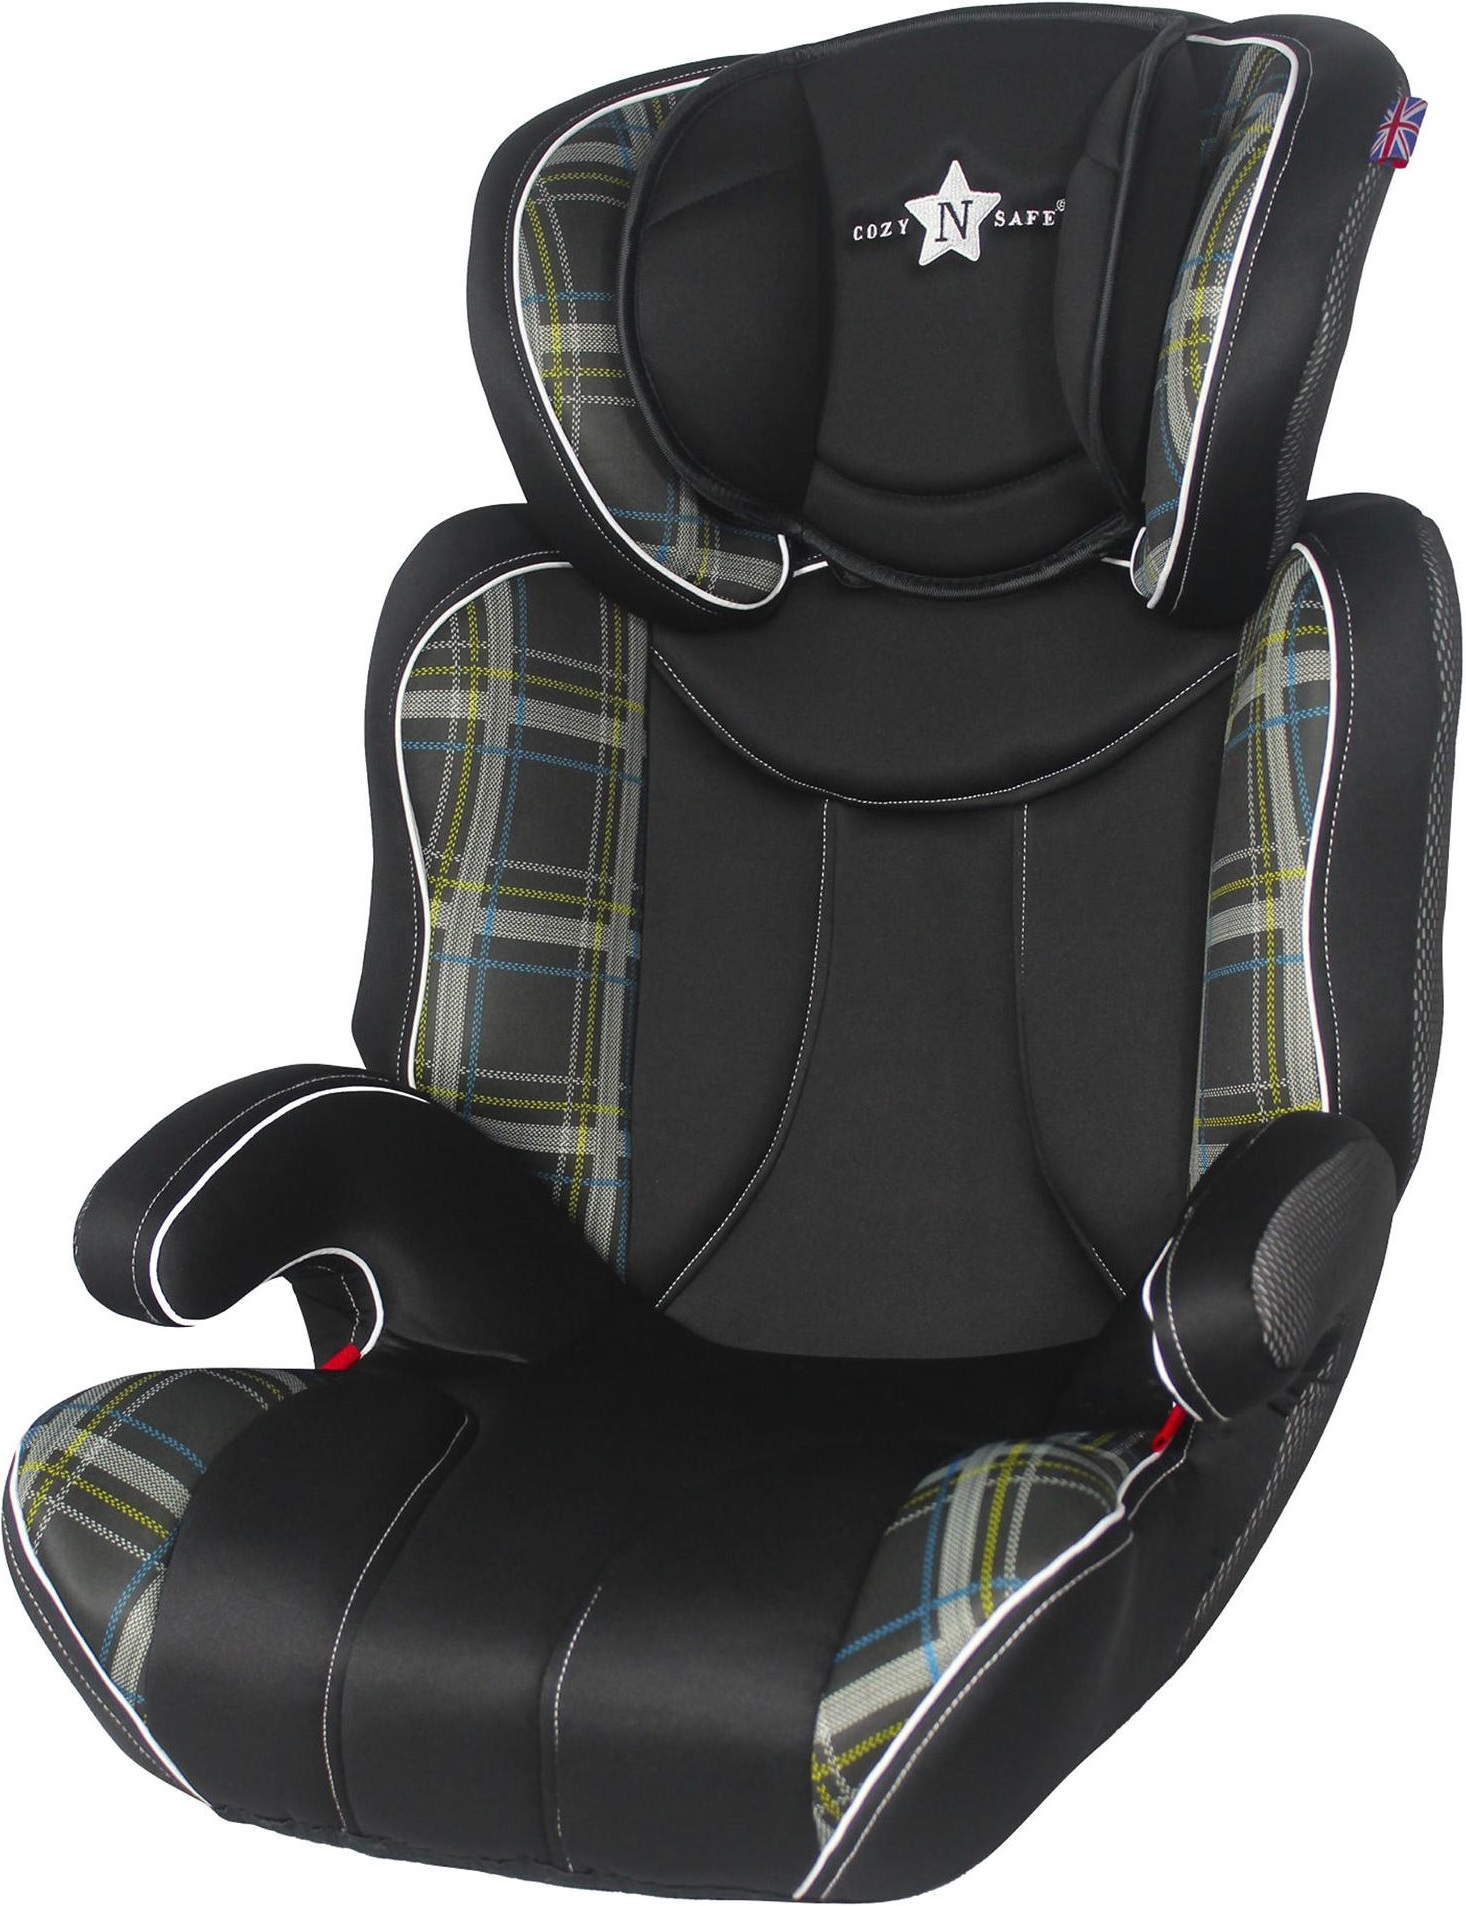 cozy n safe k2 high back booster car seat group 2 3 black check a ebay. Black Bedroom Furniture Sets. Home Design Ideas